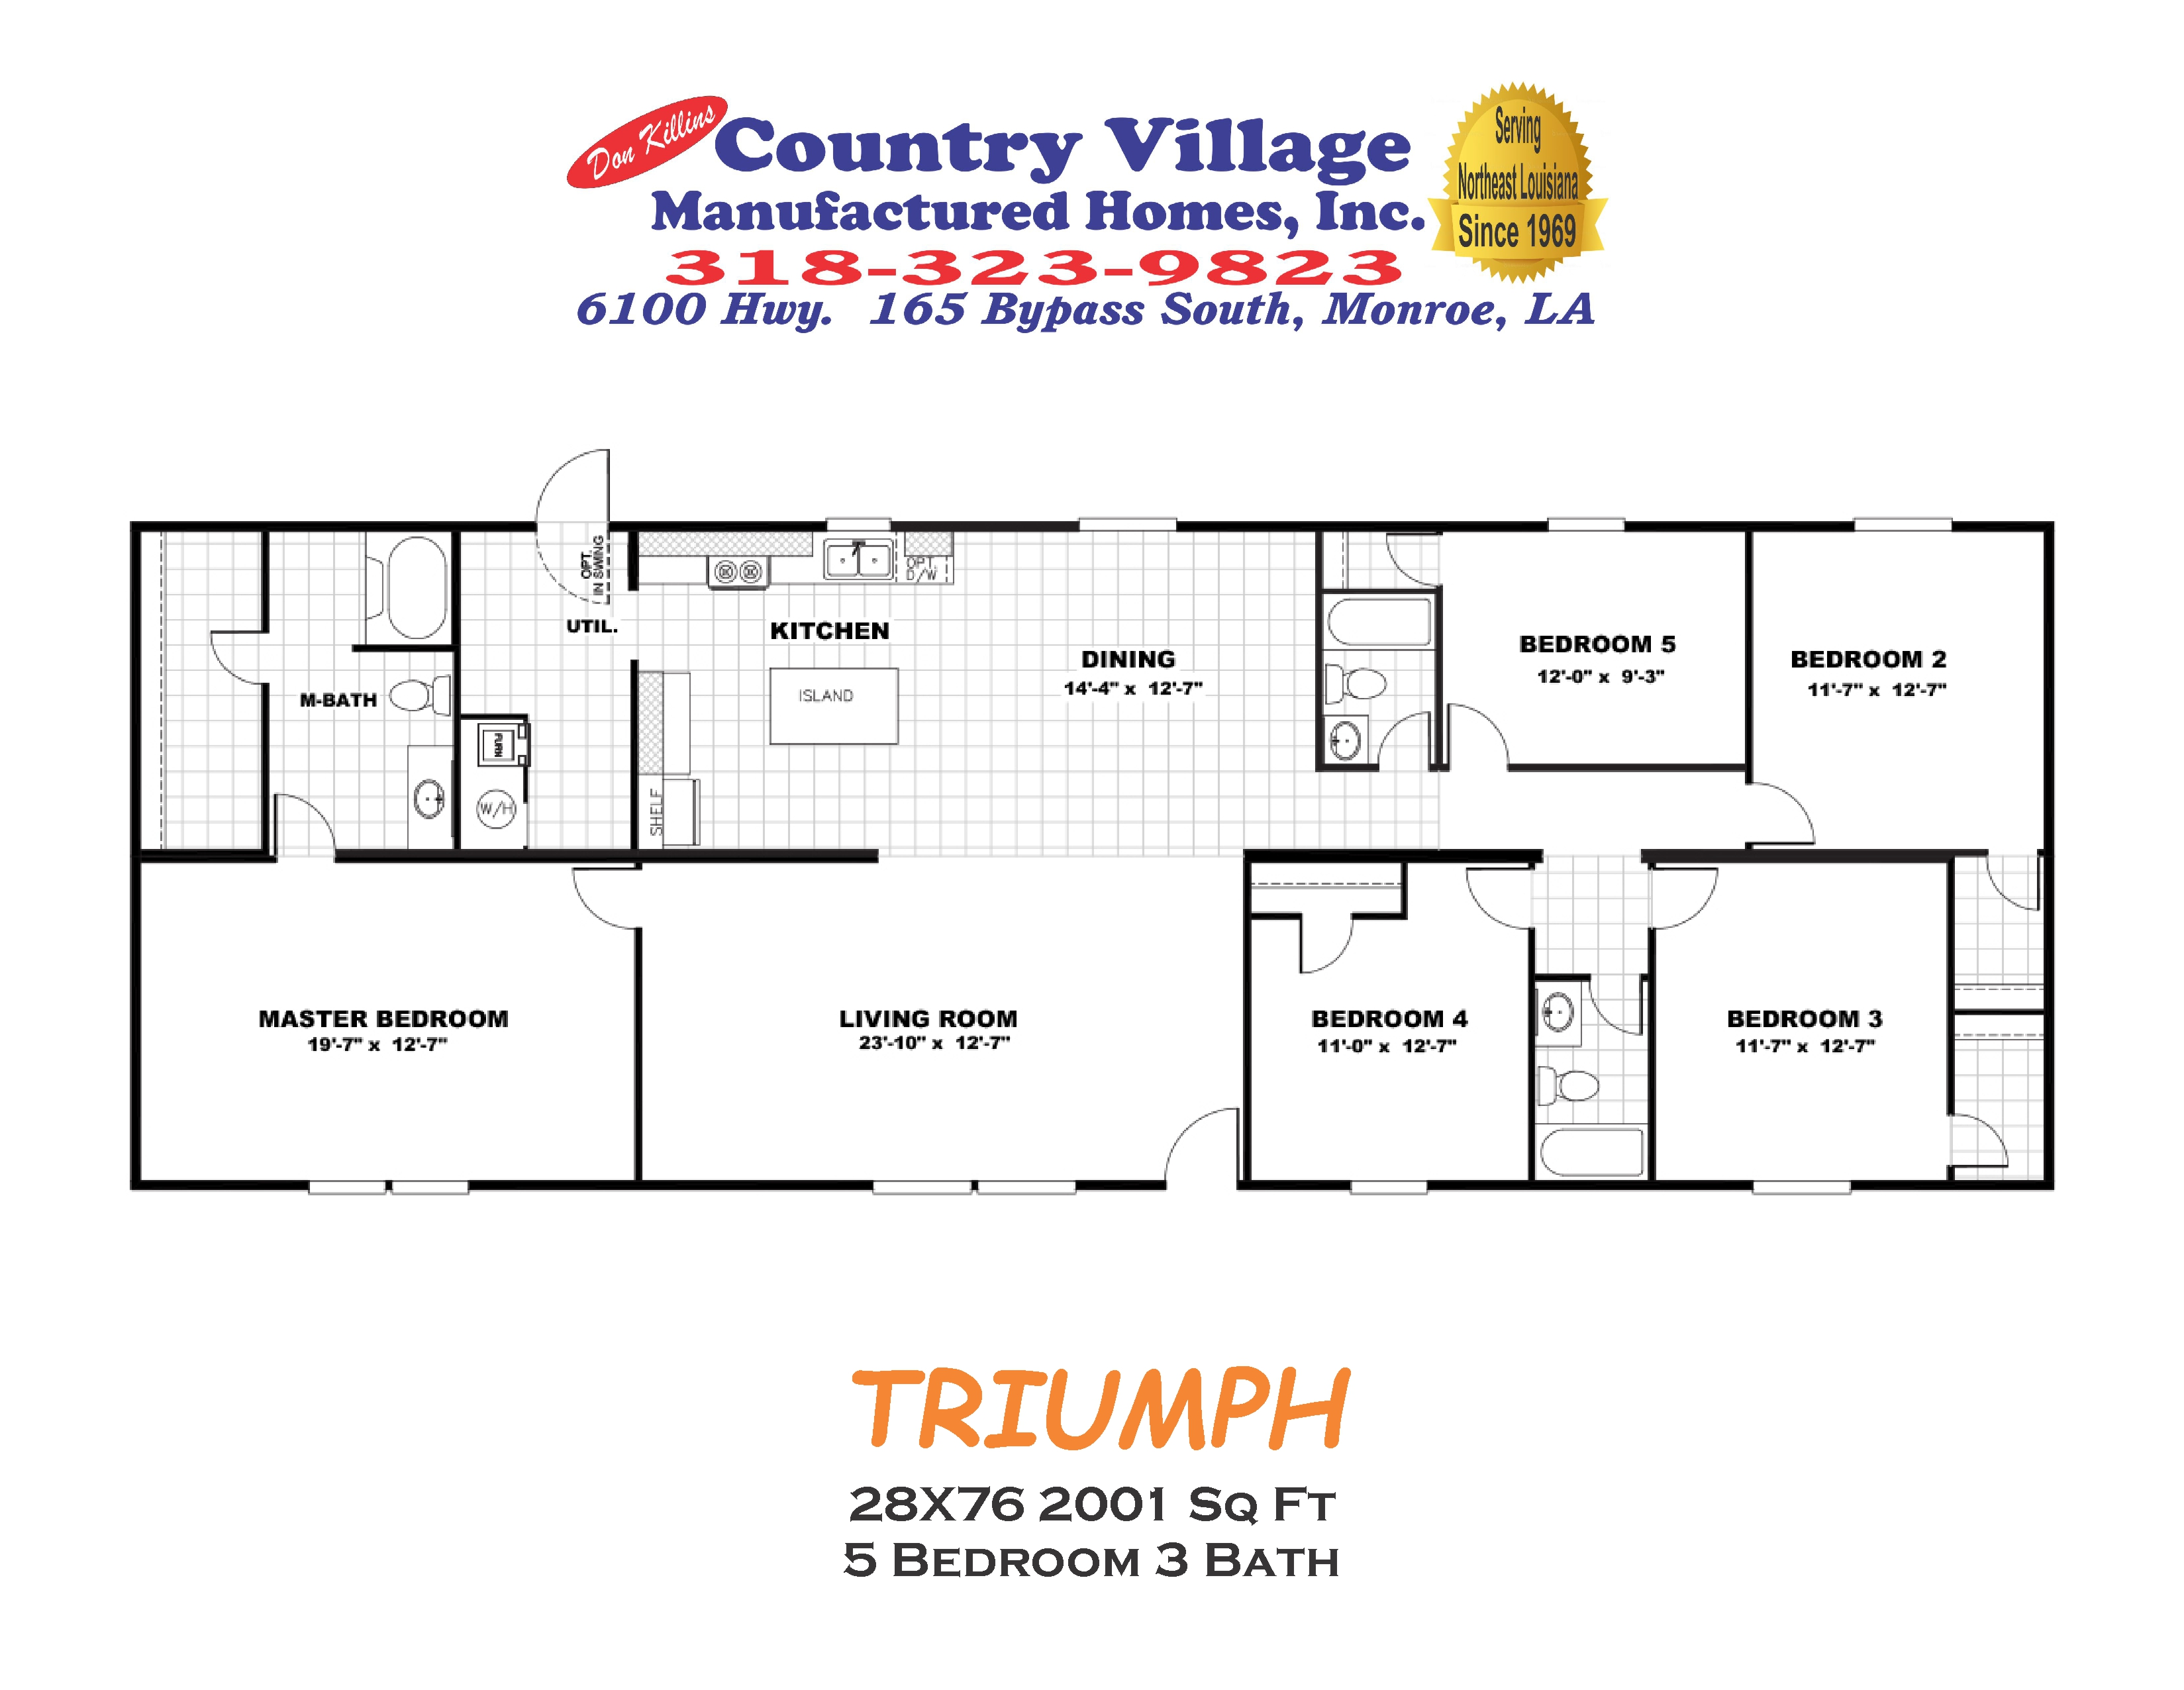 TRIUMPH 28X76 2001 sq ft 5+3